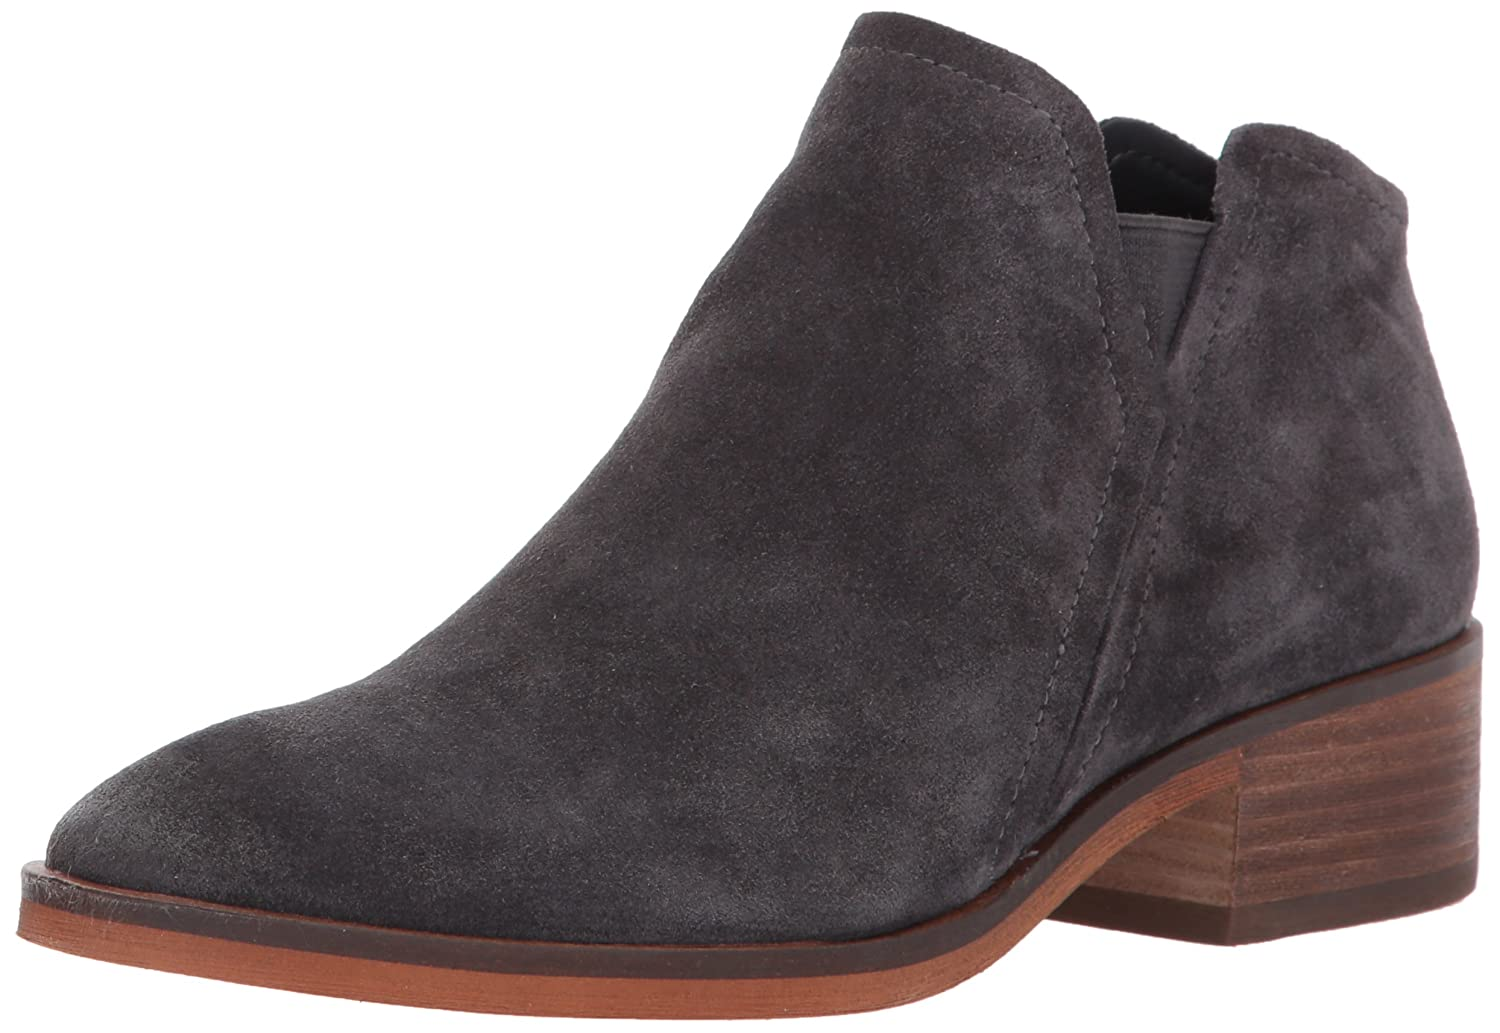 Dolce Vita Women's Tay Ankle Boot B06XGPN9ZQ 8.5 B(M) US|Anthracite Suede